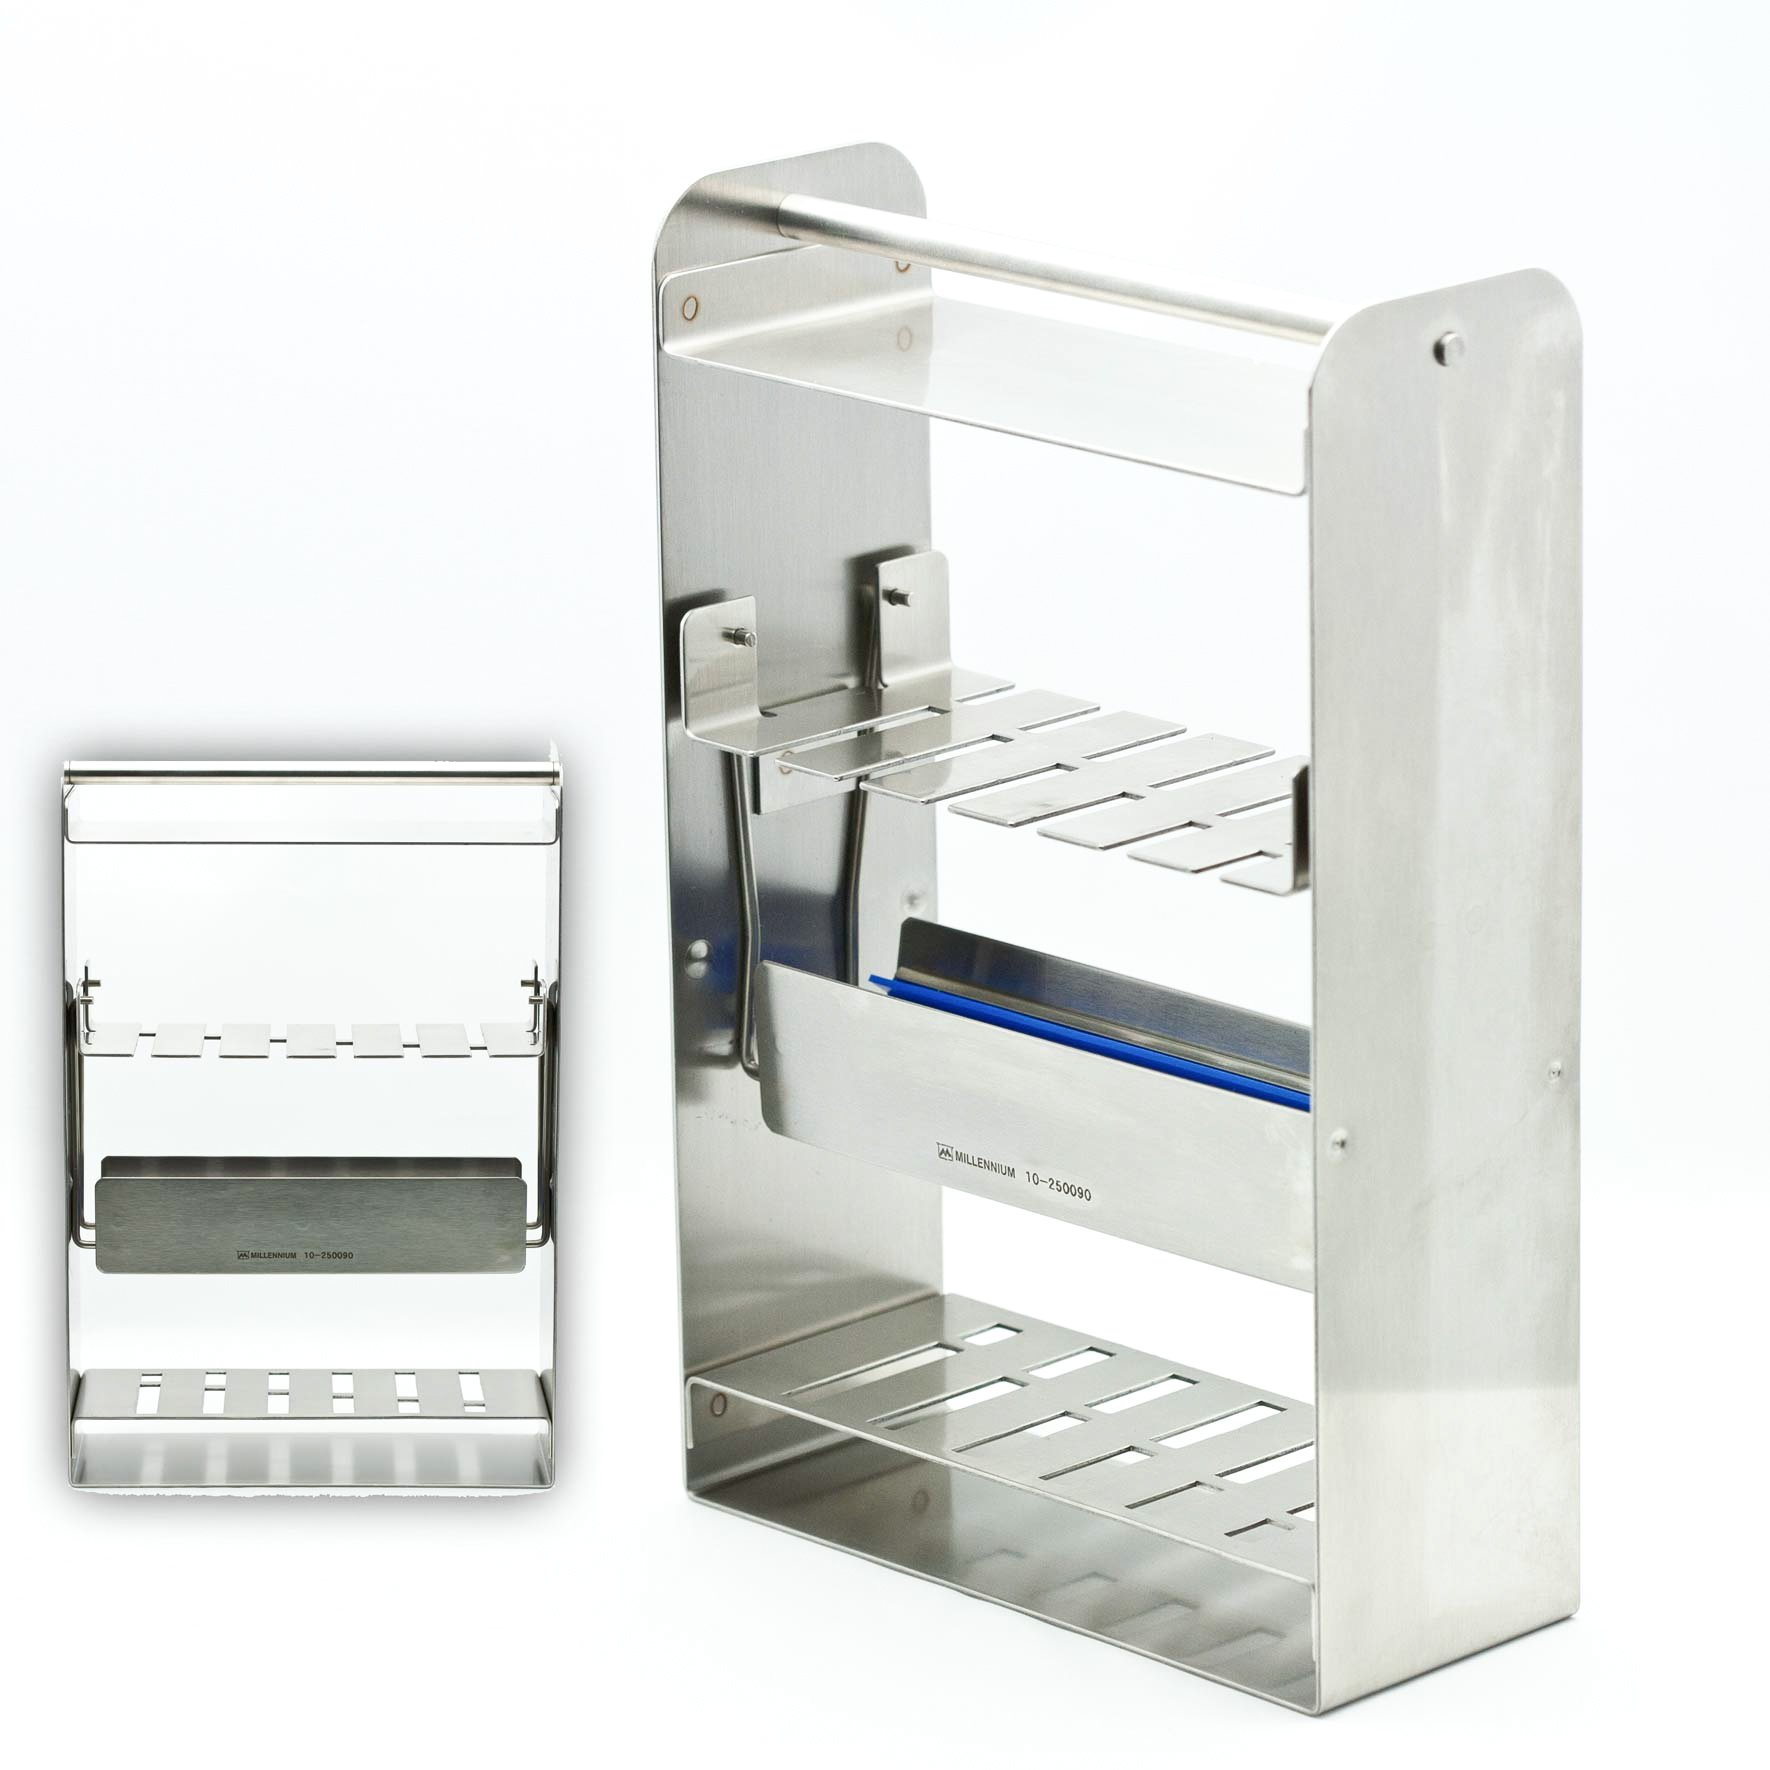 Orthopedic Instrument Racks - surgicalinstruments .com